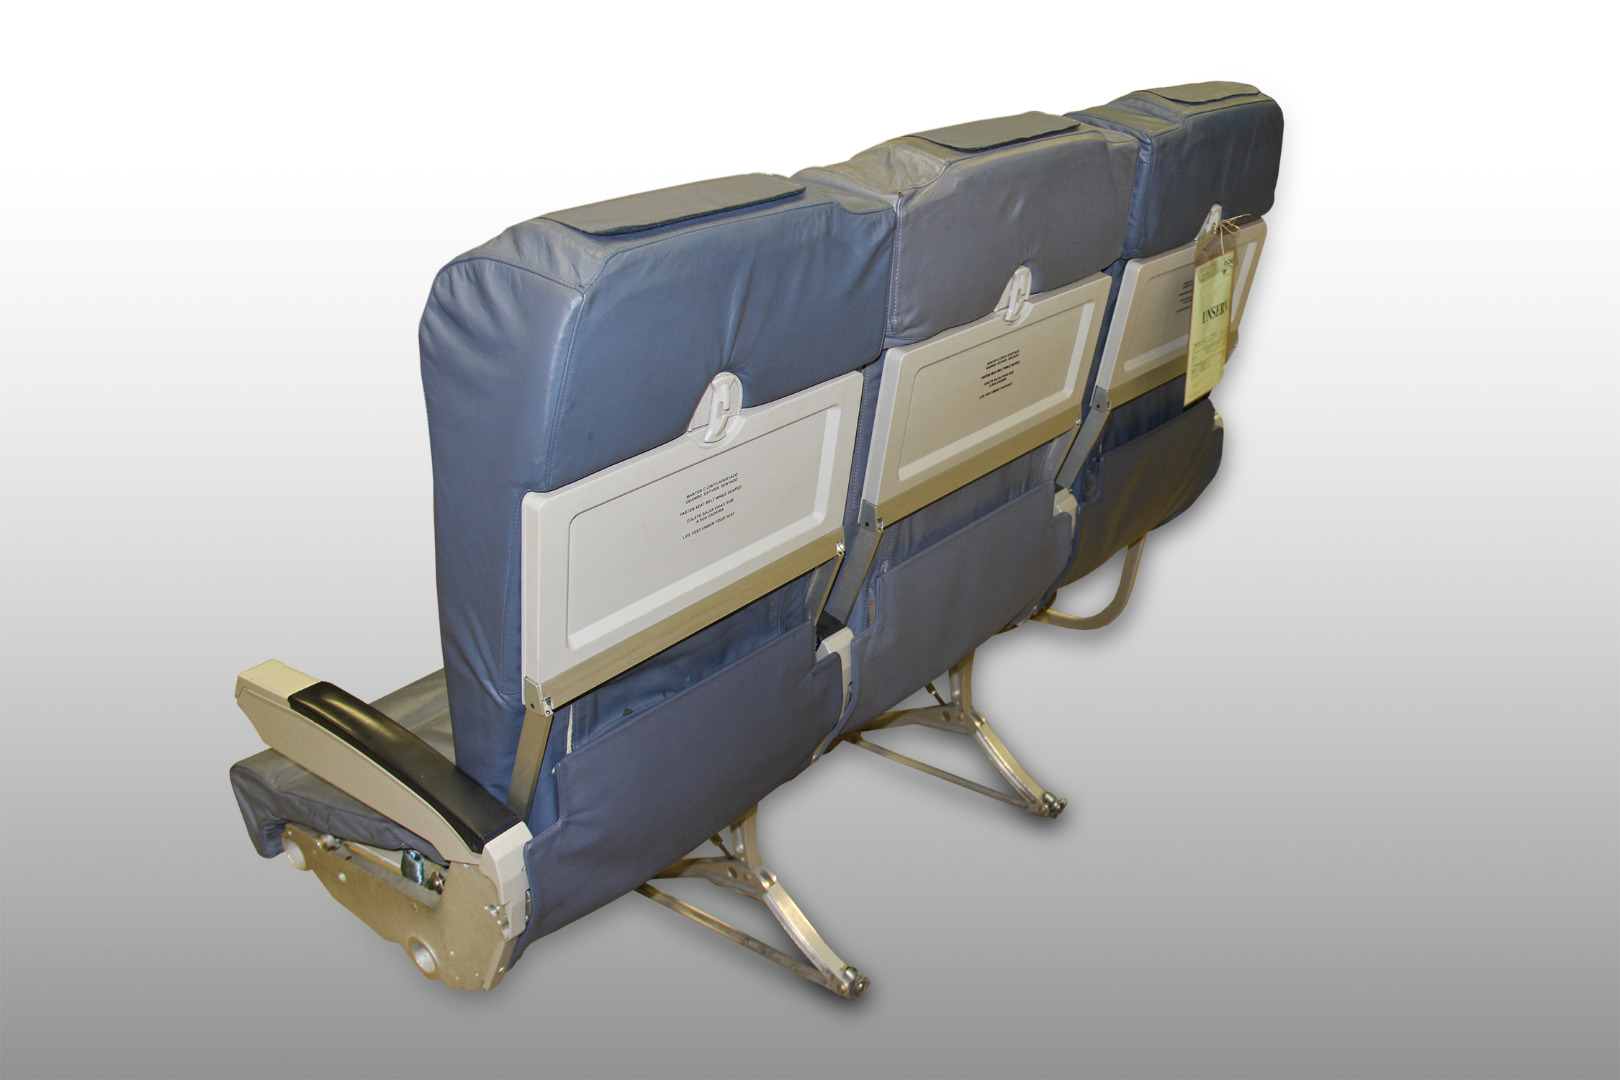 Economy triple chair from TAP A319 TTK airplane - 33